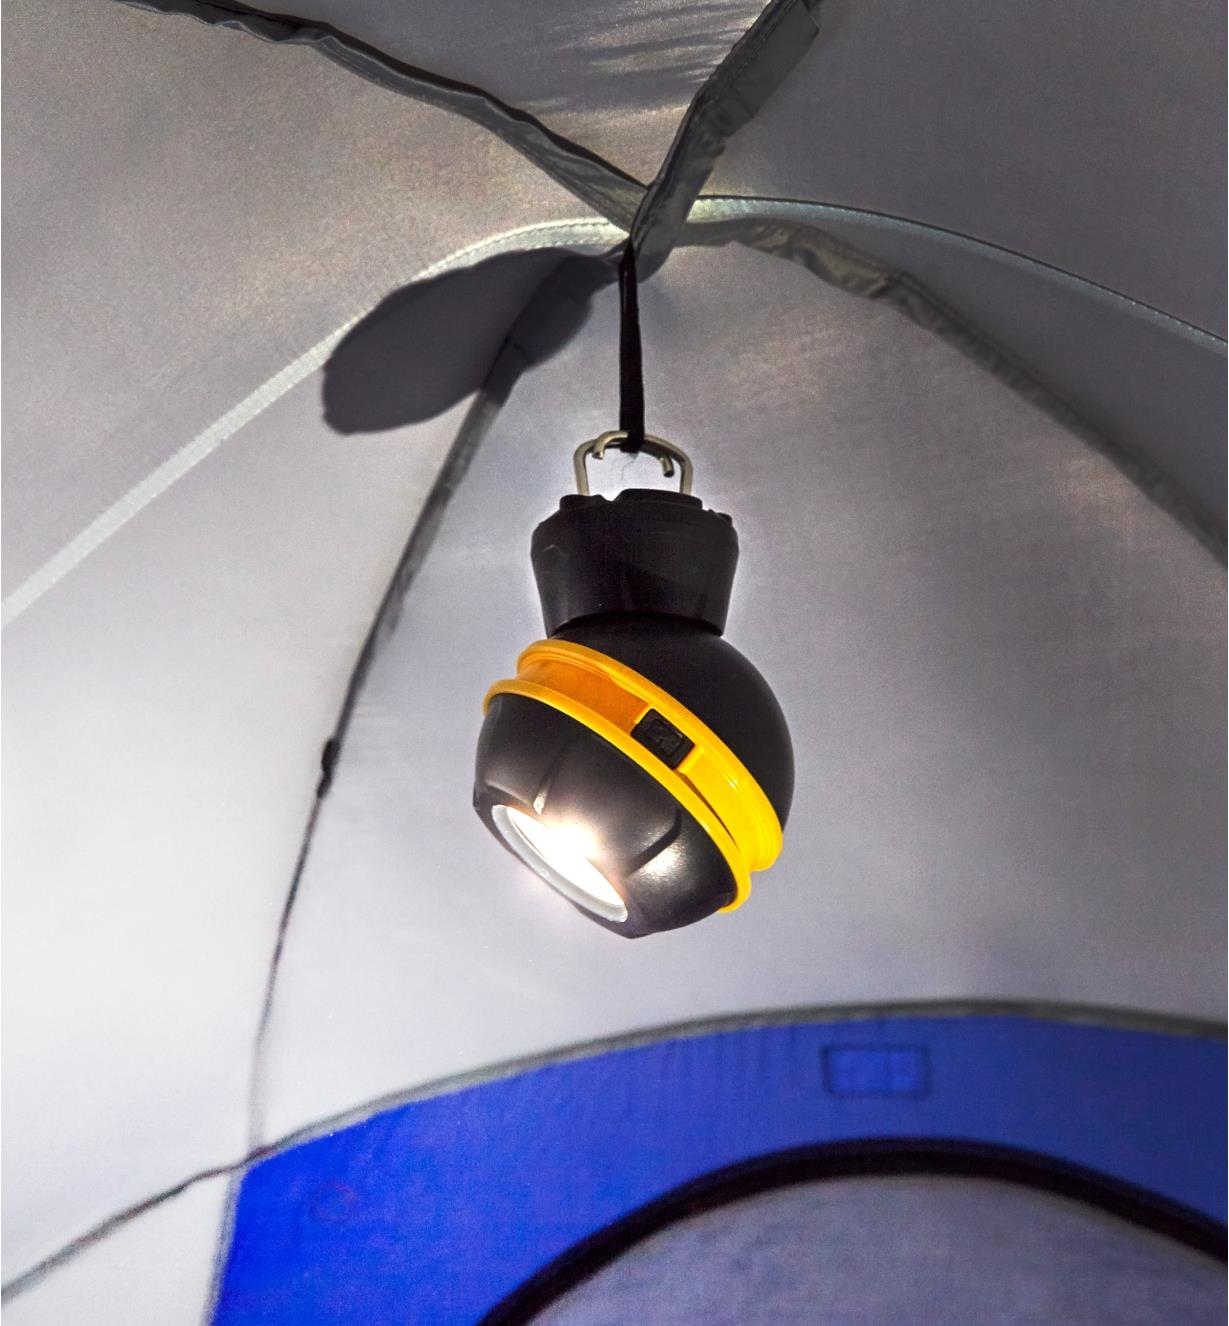 A rechargeable orb light hung from the ceiling of a tent using fold-out hooks built into the base